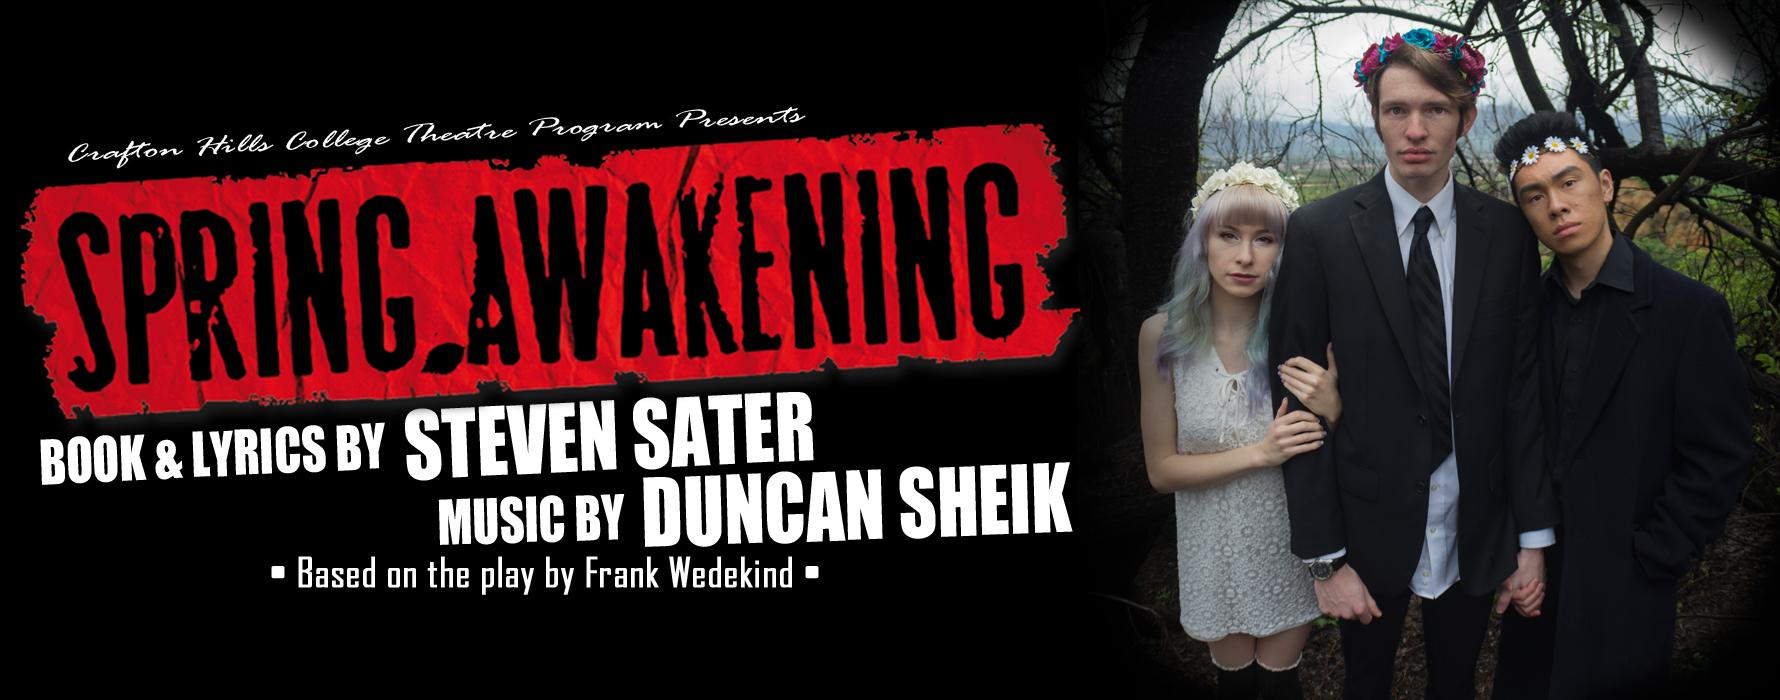 "Crafton Hills College Theatre Program Presents ""Spring Awakening"". Book and Lyrics by Steven Sater, music by Duncan Sheik. Based on the play by Frank Wedekind."